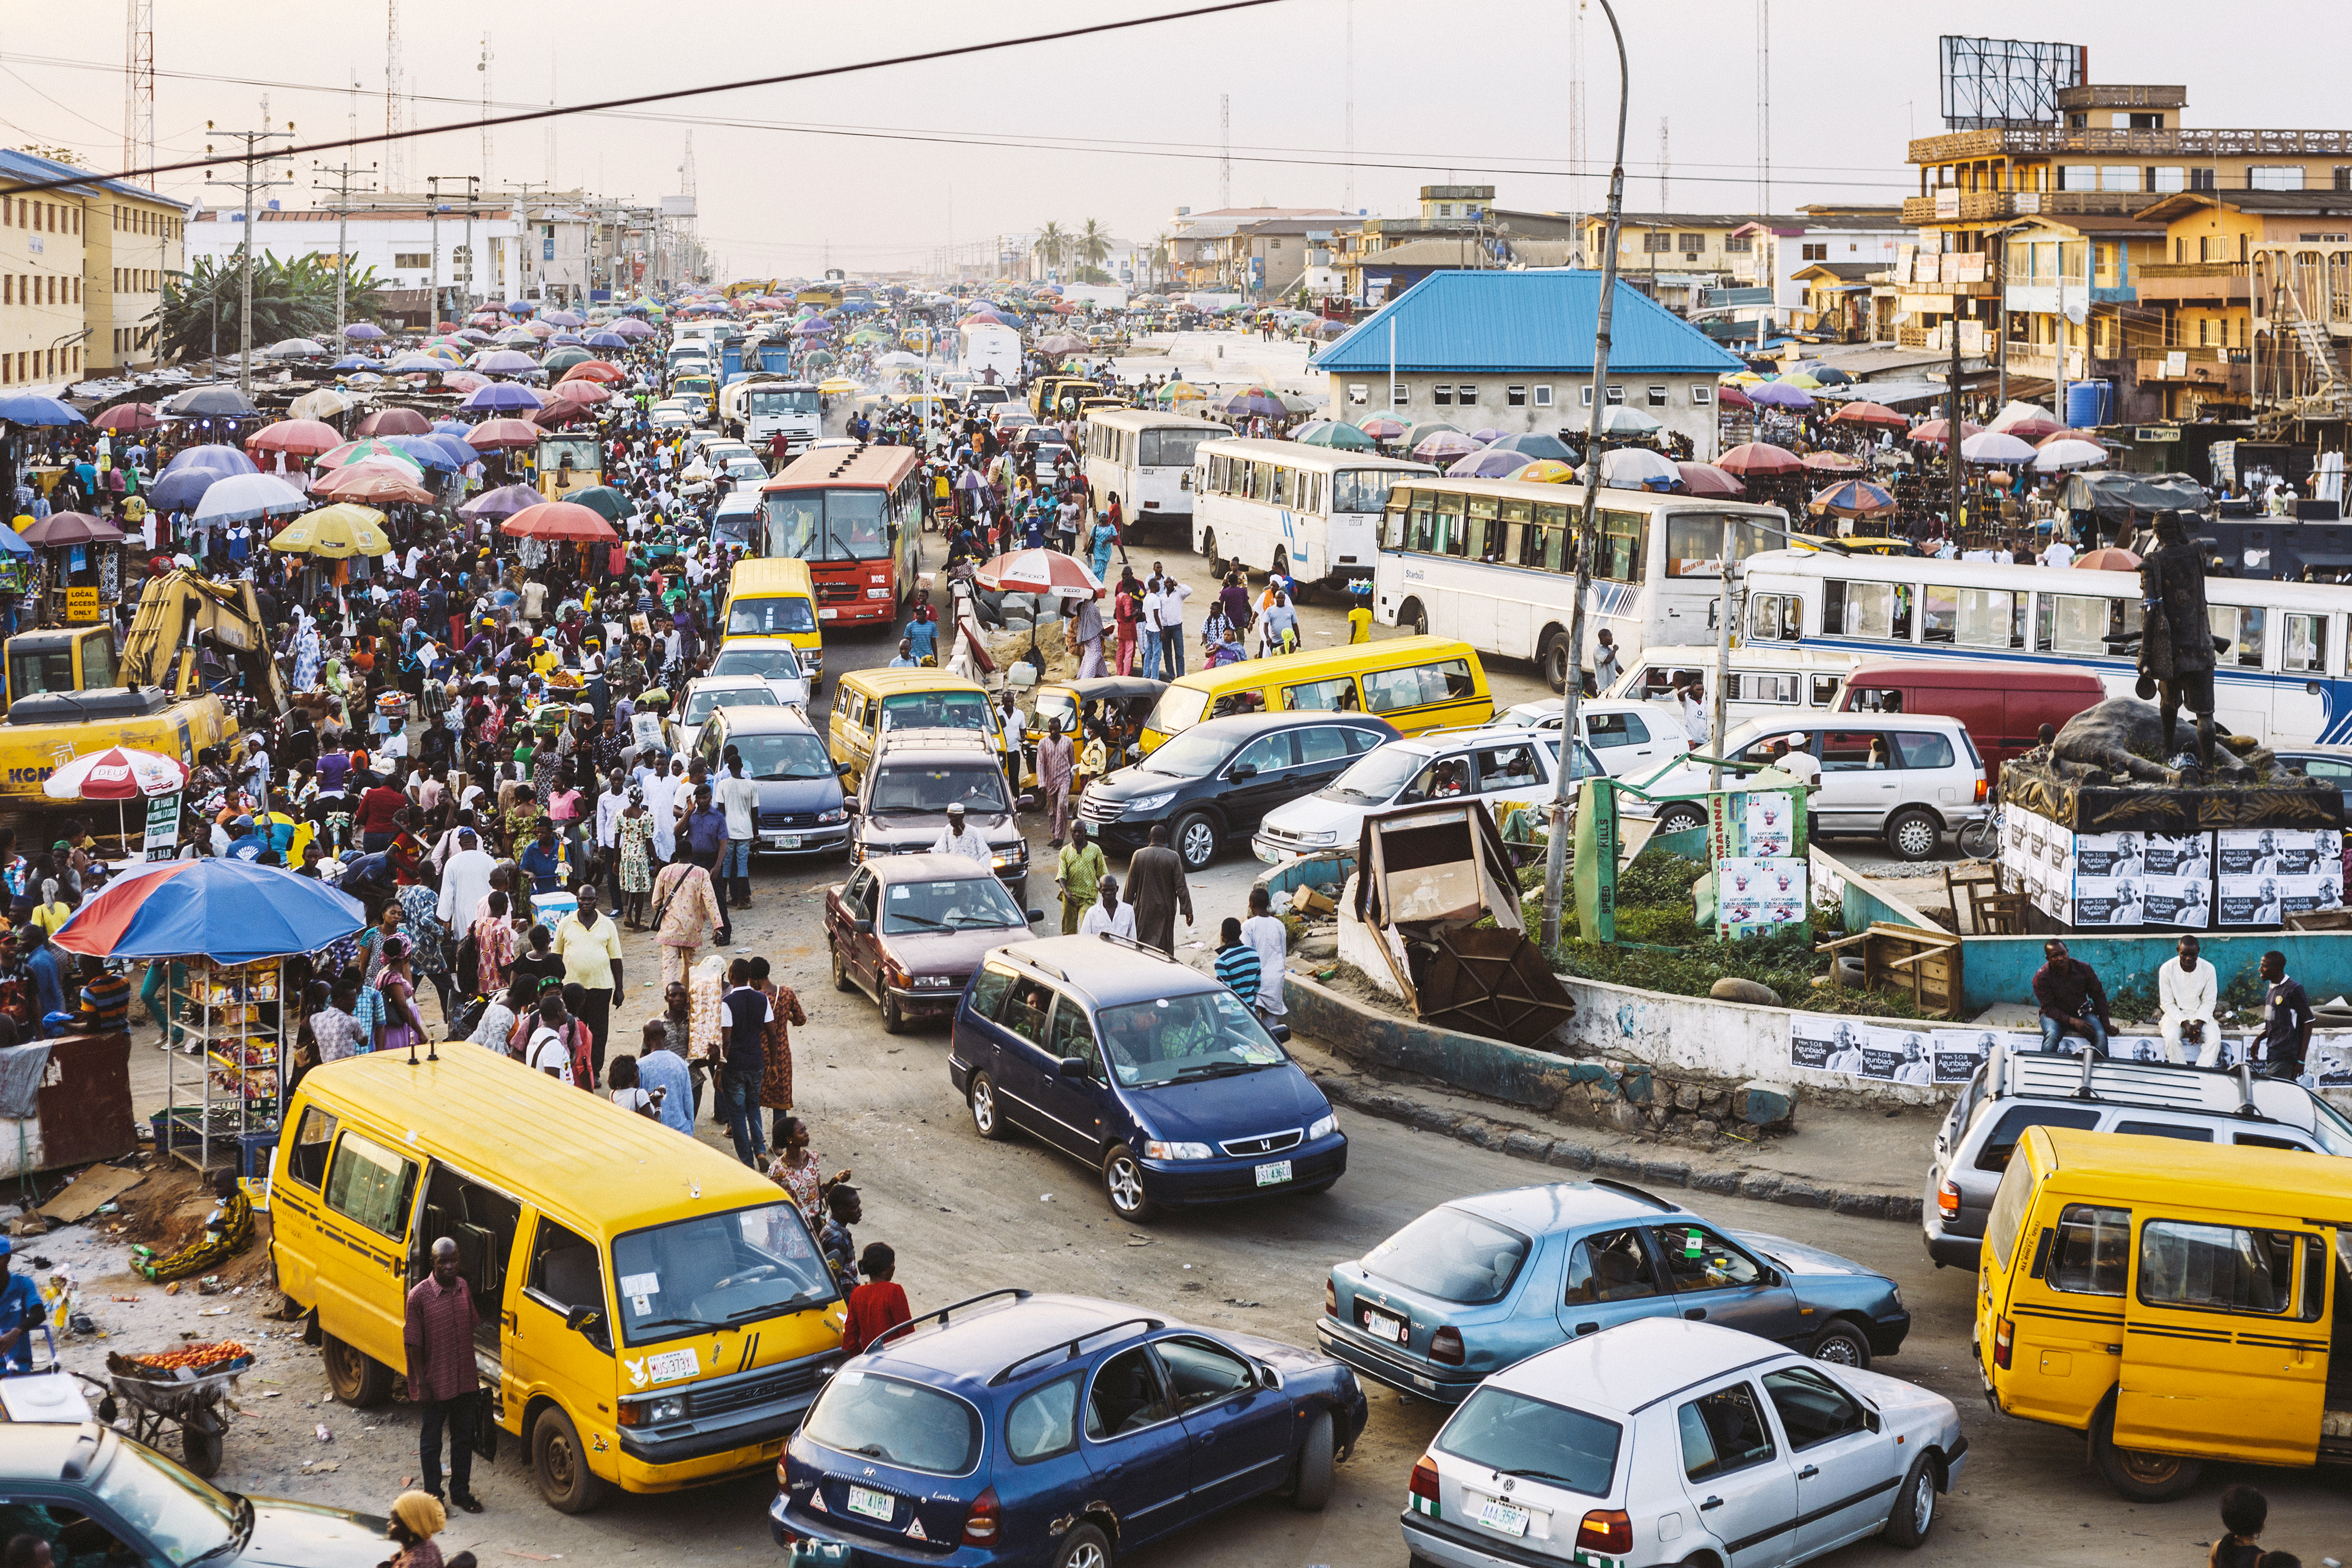 Busy streets of African town. Lagos, Nigeria.